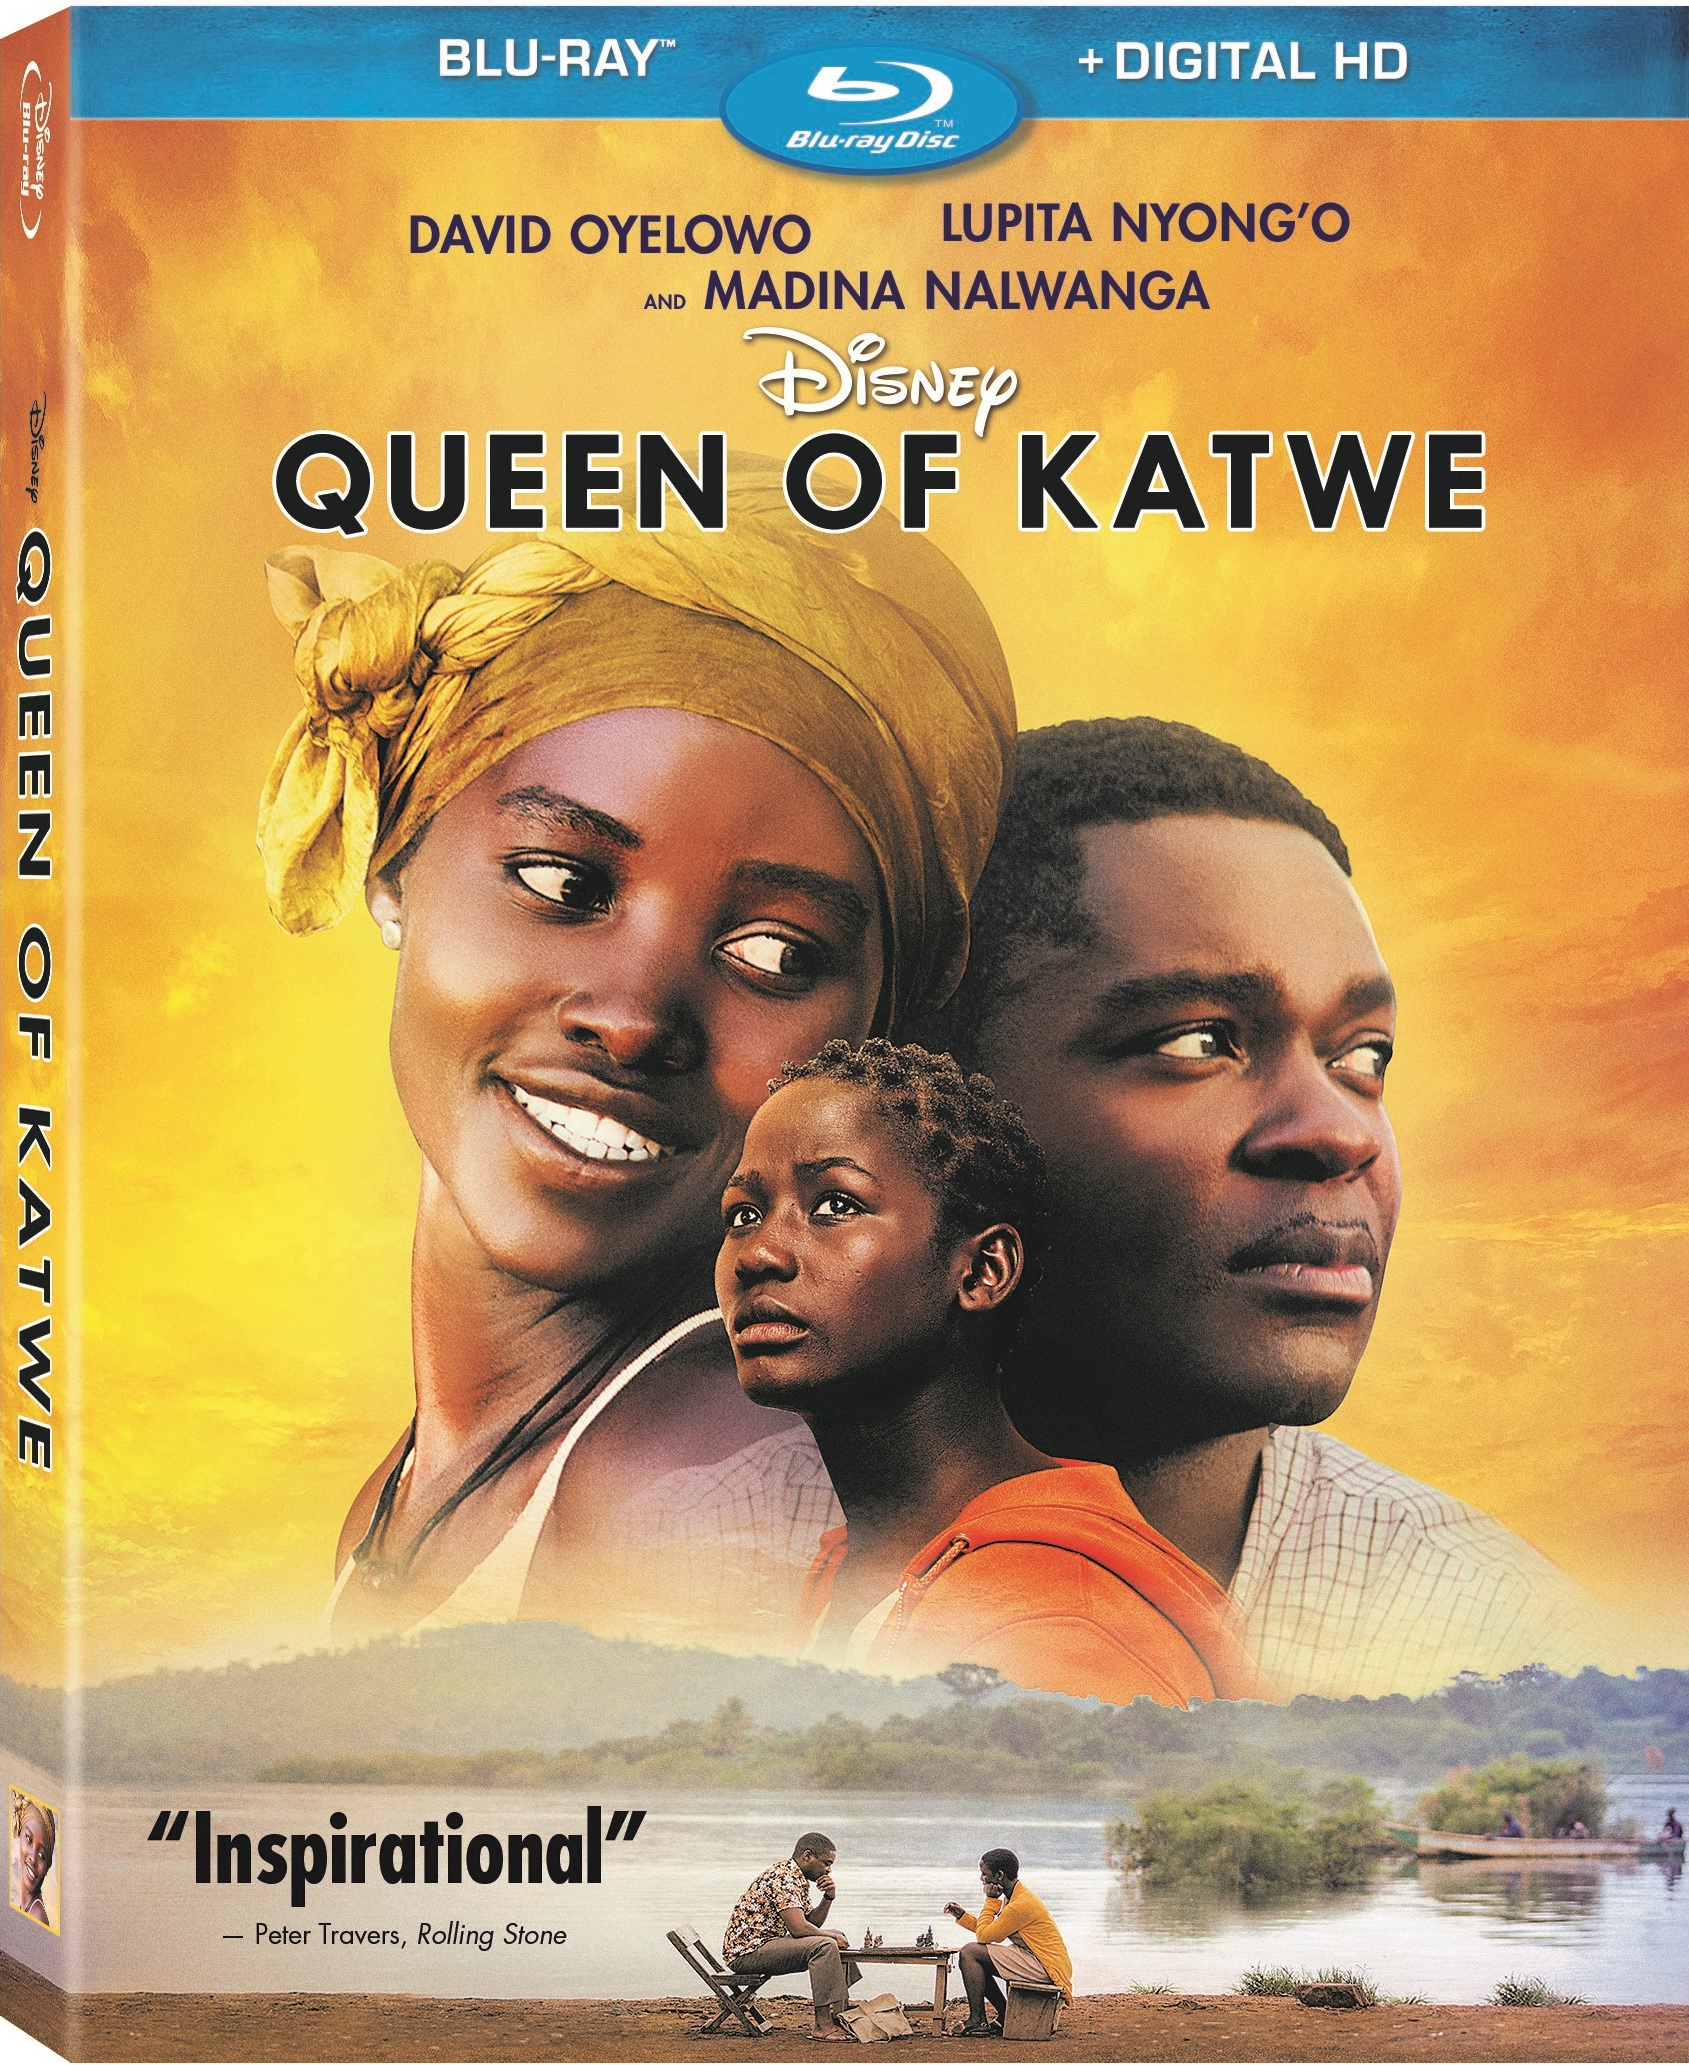 Queen of Katwe Blu-ray Review